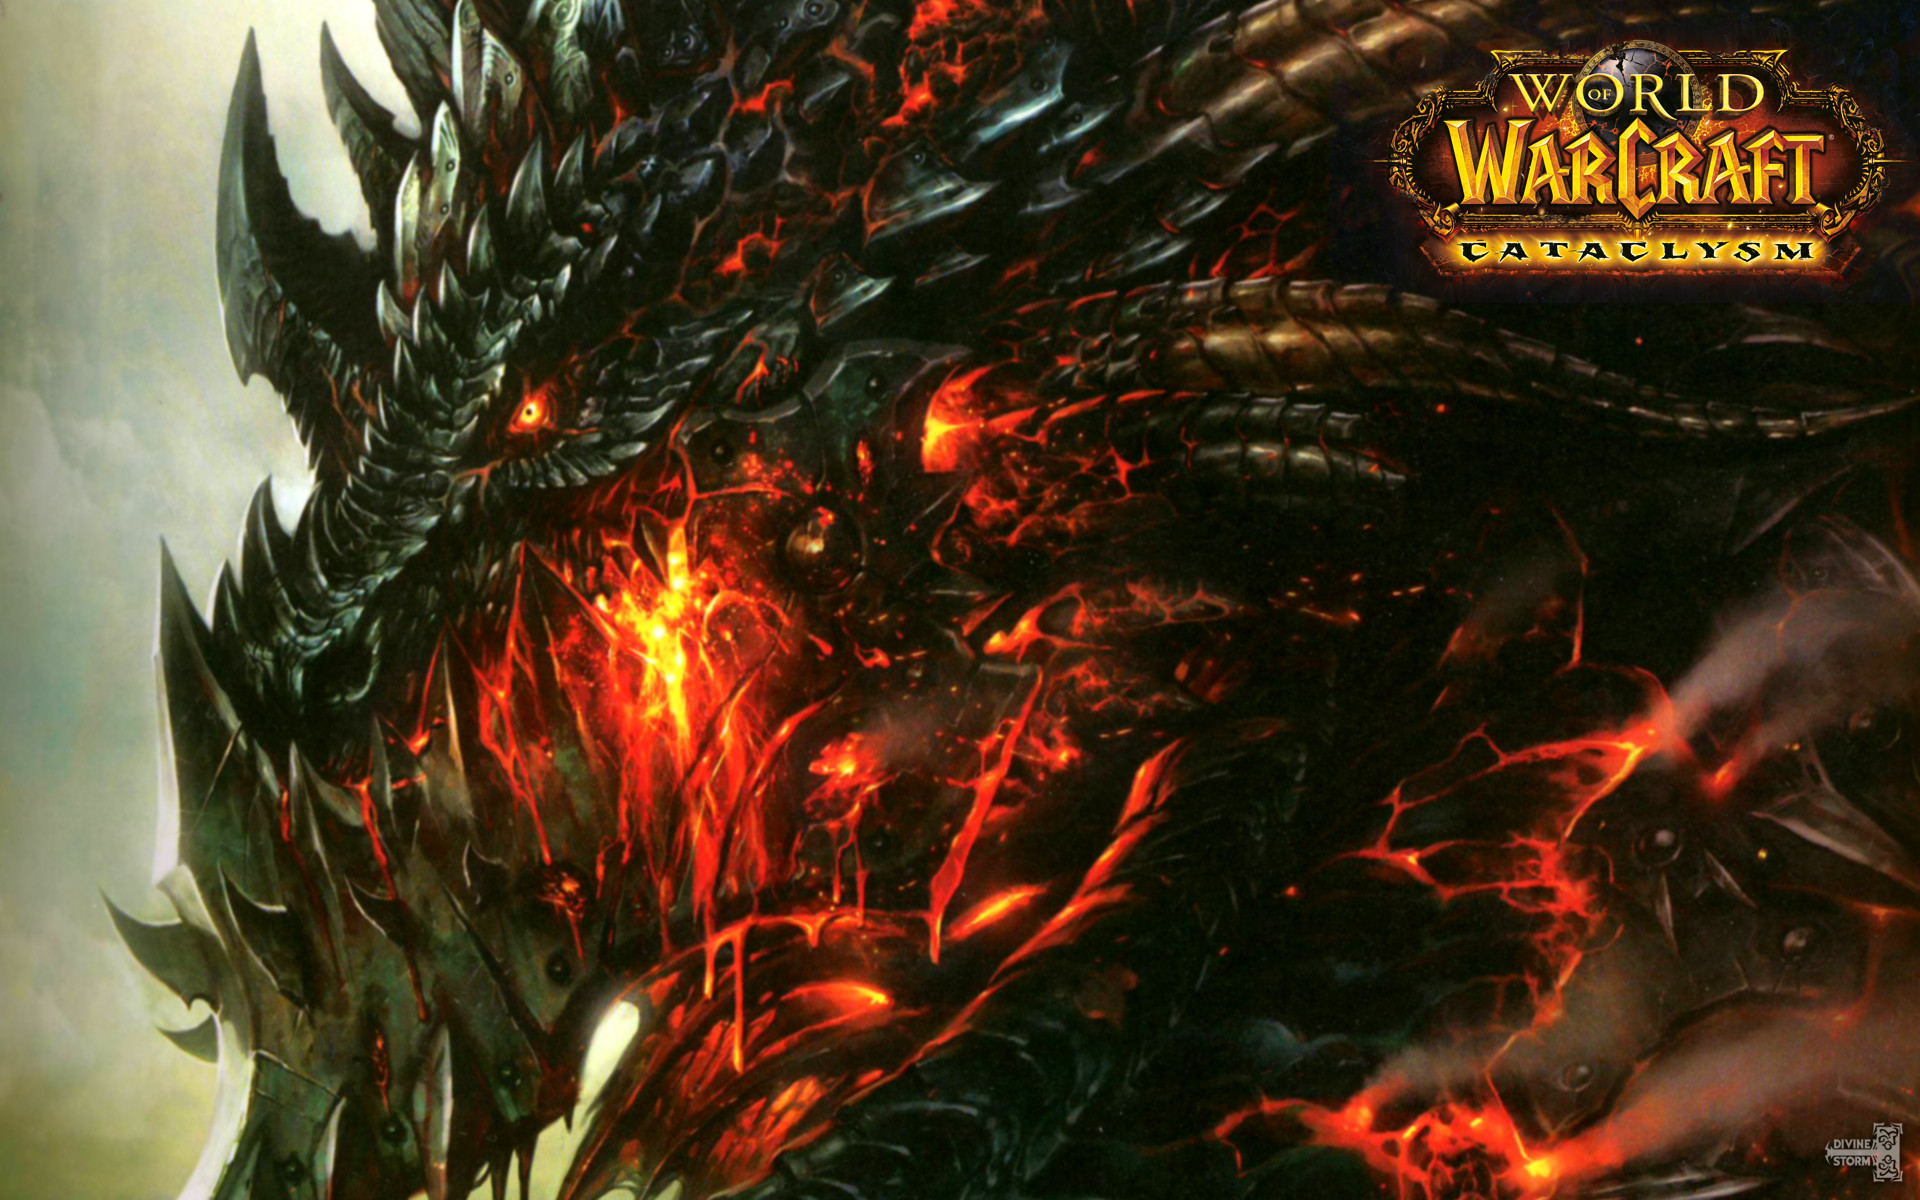 1920x1200 dragons | Dragons World Of Warcraft Deathwing Blizzard Entertainment World  Of ... World Of Warcraft CataclysmHd WallpaperDragons